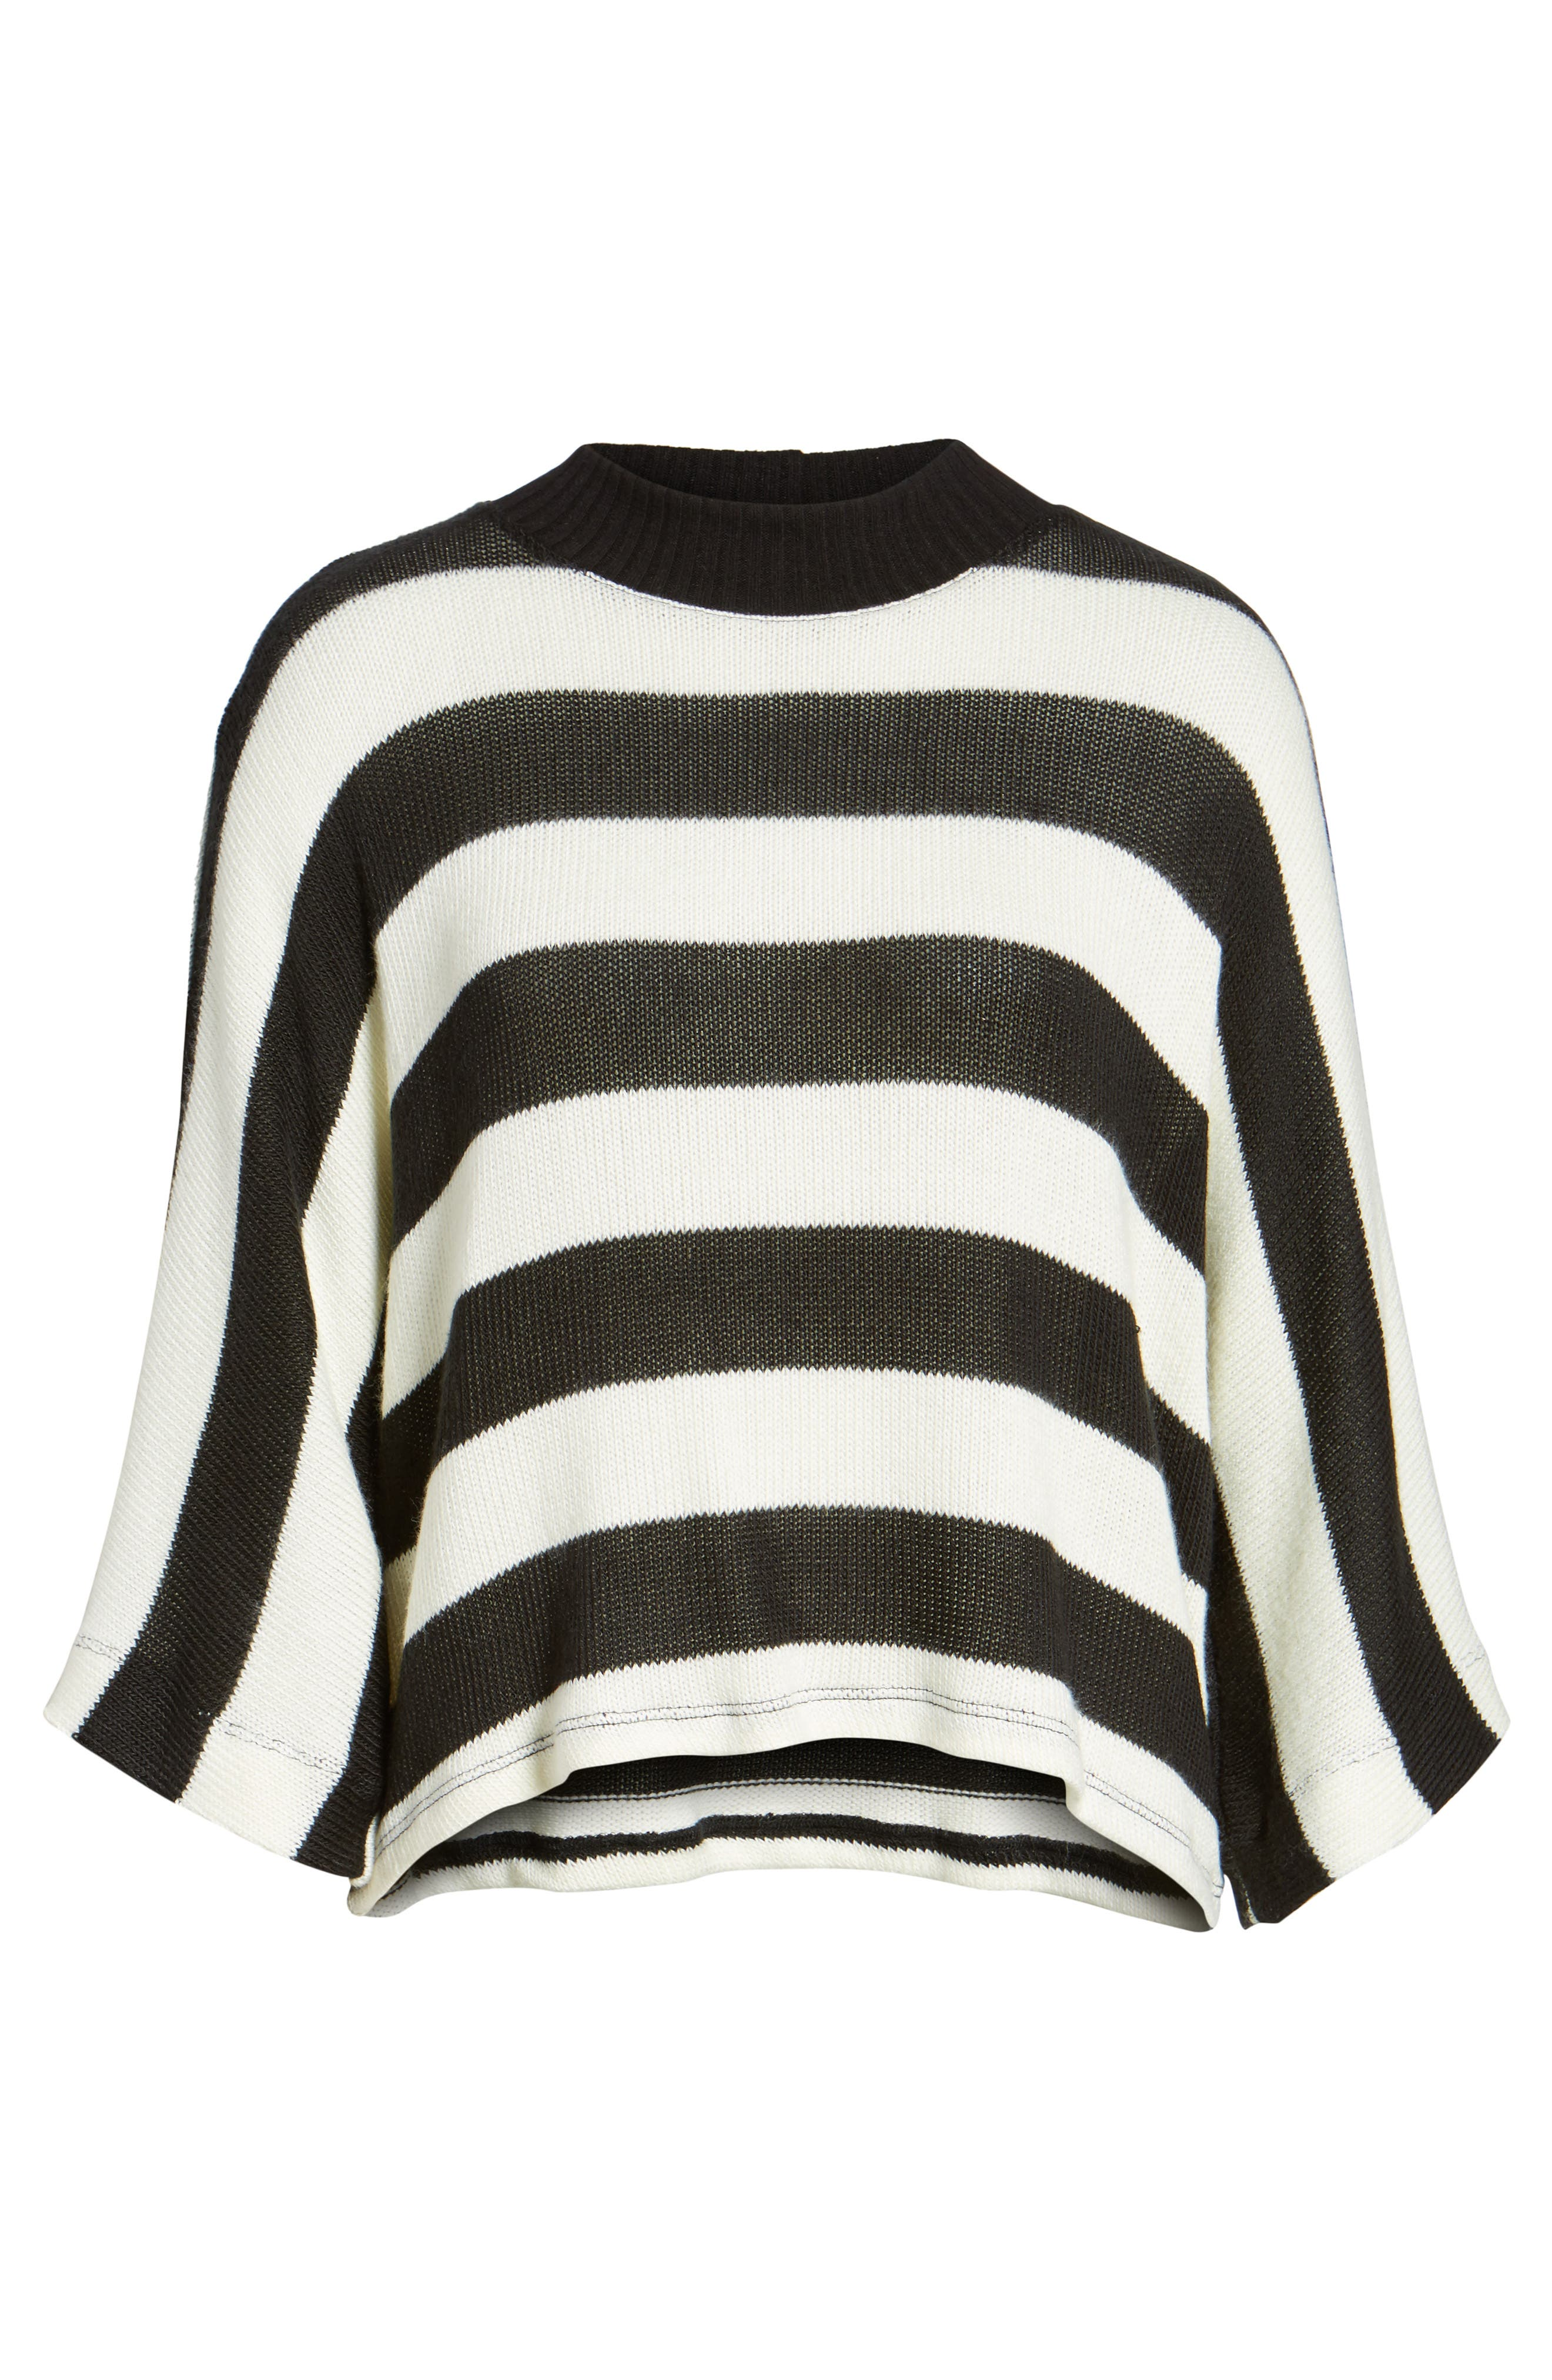 Kingston Stripe Sweater,                             Alternate thumbnail 6, color,                             001